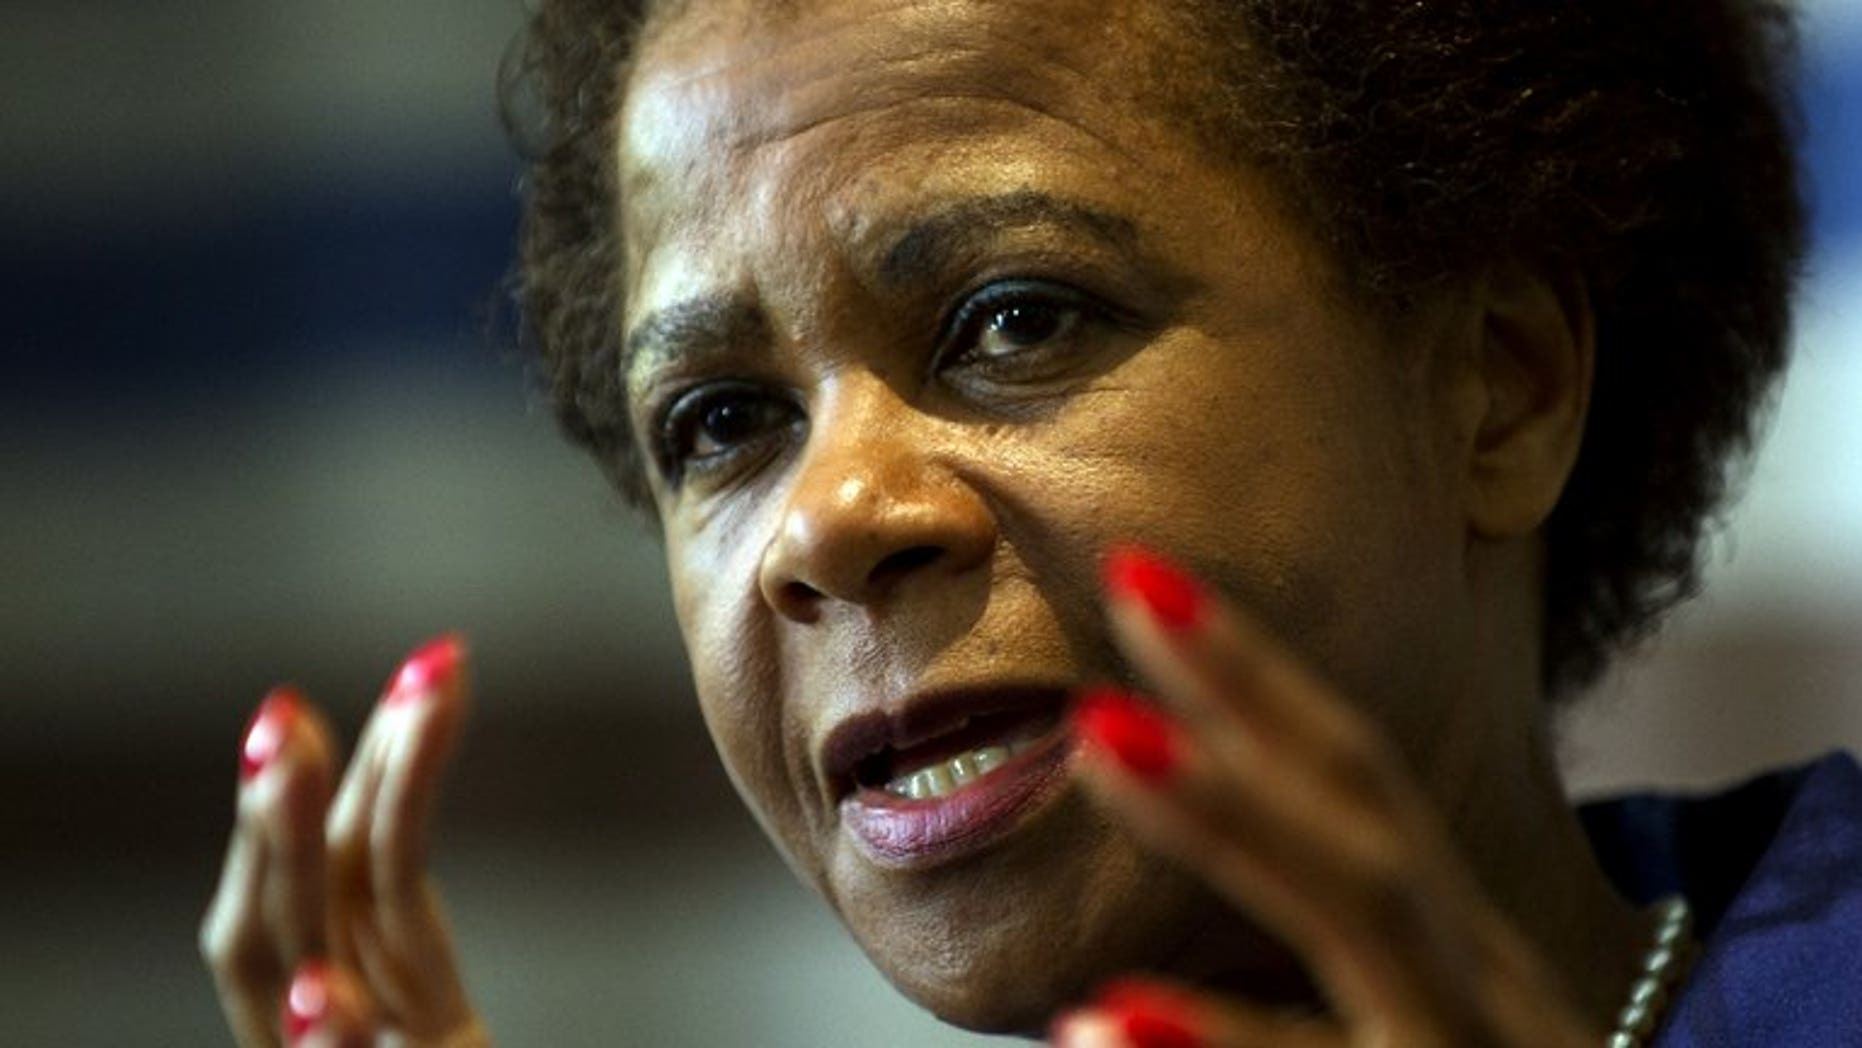 South African businesswoman and anti-apartheid activist Mamphela Ramphele speaks to the media in Johannesburg on June 6, 2013. Ramphele will launch a new opposition party to challenge the ruling ANC in elections next year.